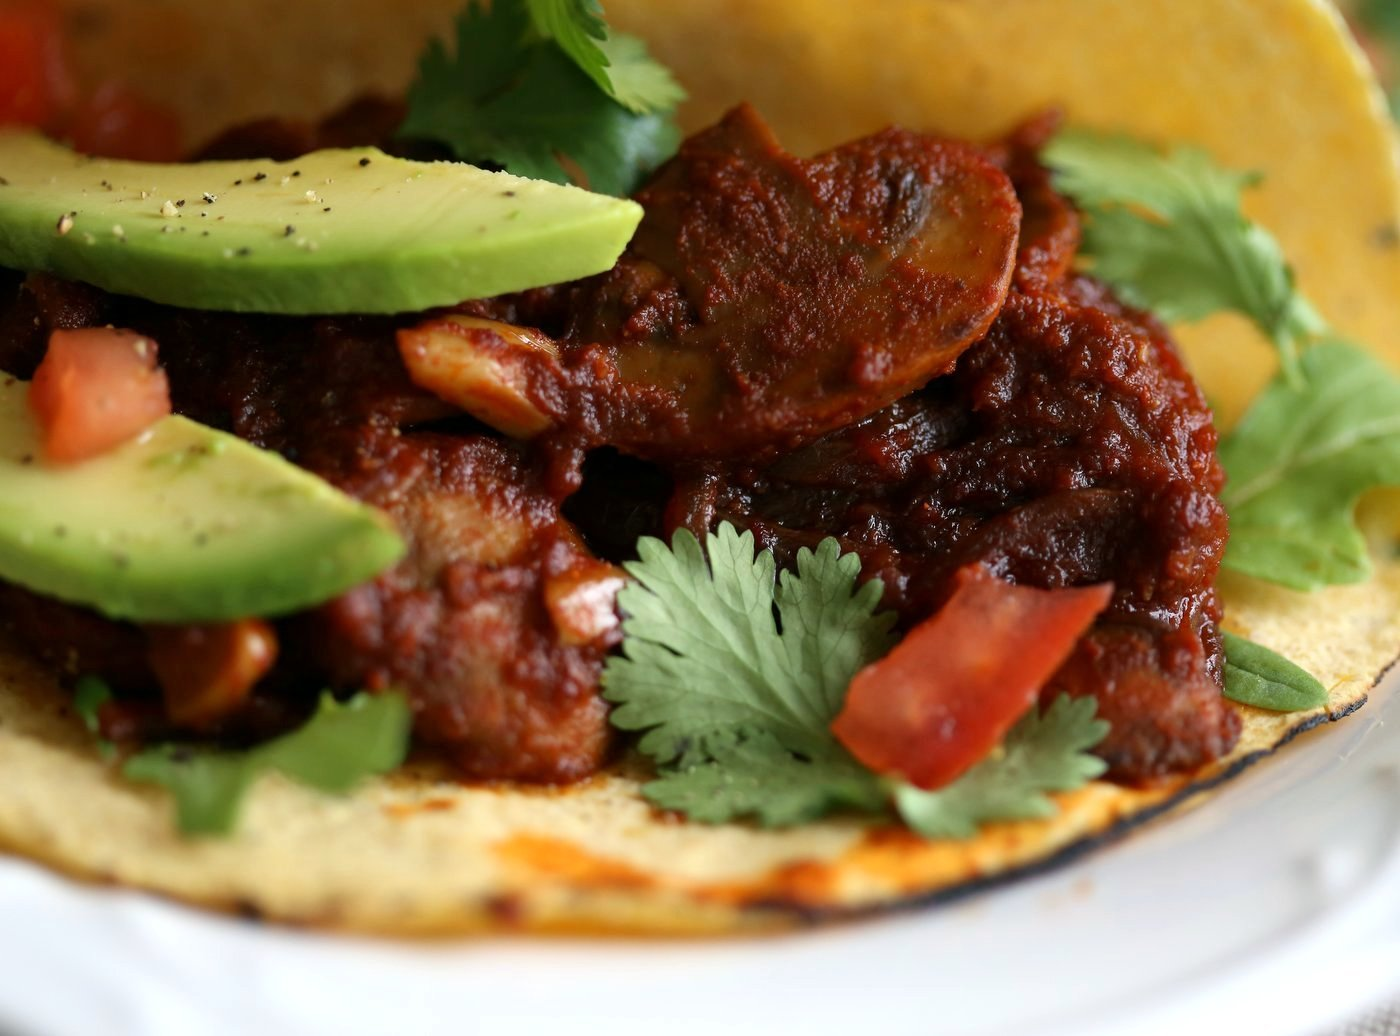 Vegan Barbacoa Mushroom Tacos . This Barbacoa Sauce is super easy and versatile. Use it with beans, lentils or other shredded vegetables for variation. Vegan Barbacoa Recipe. Gluten-free Nut-free Recipe | VeganRicha.com